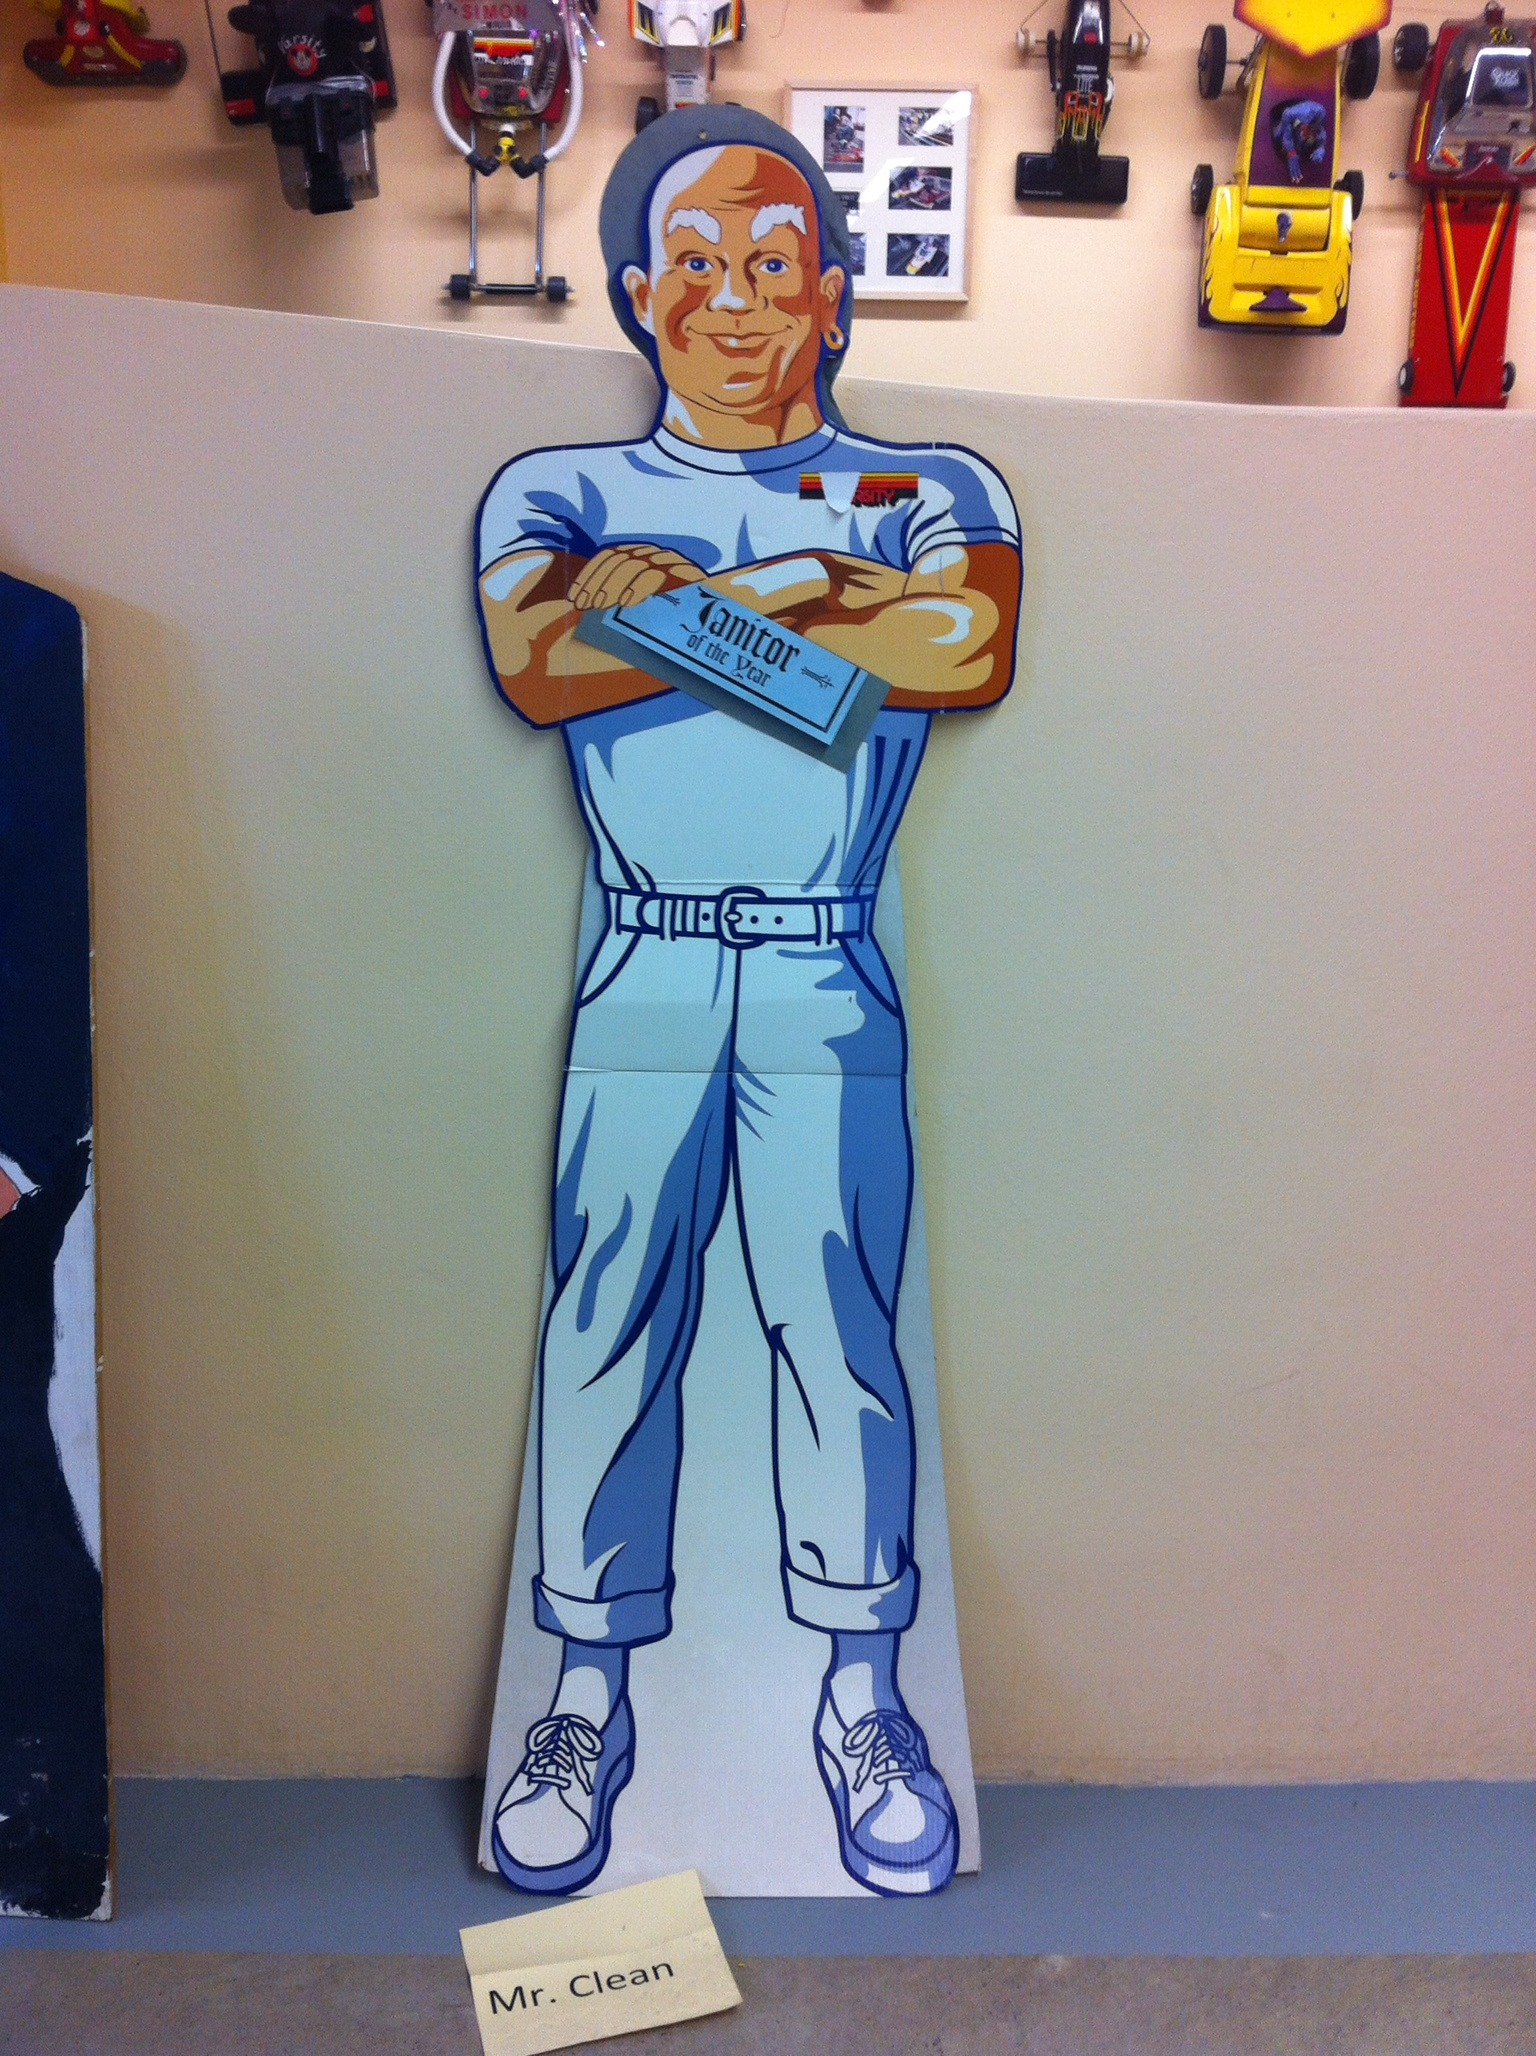 Mr. Clean cardboard cut-out.